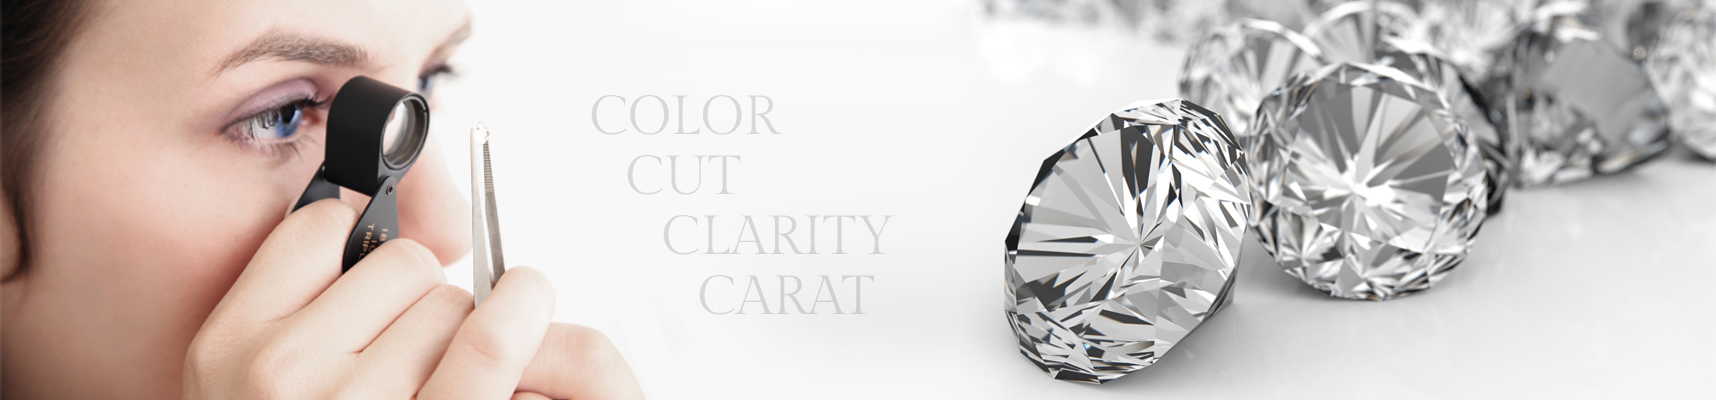 Learn more about the 4 C's of Diamonds: Color, Cut, Clarity, and Carat.